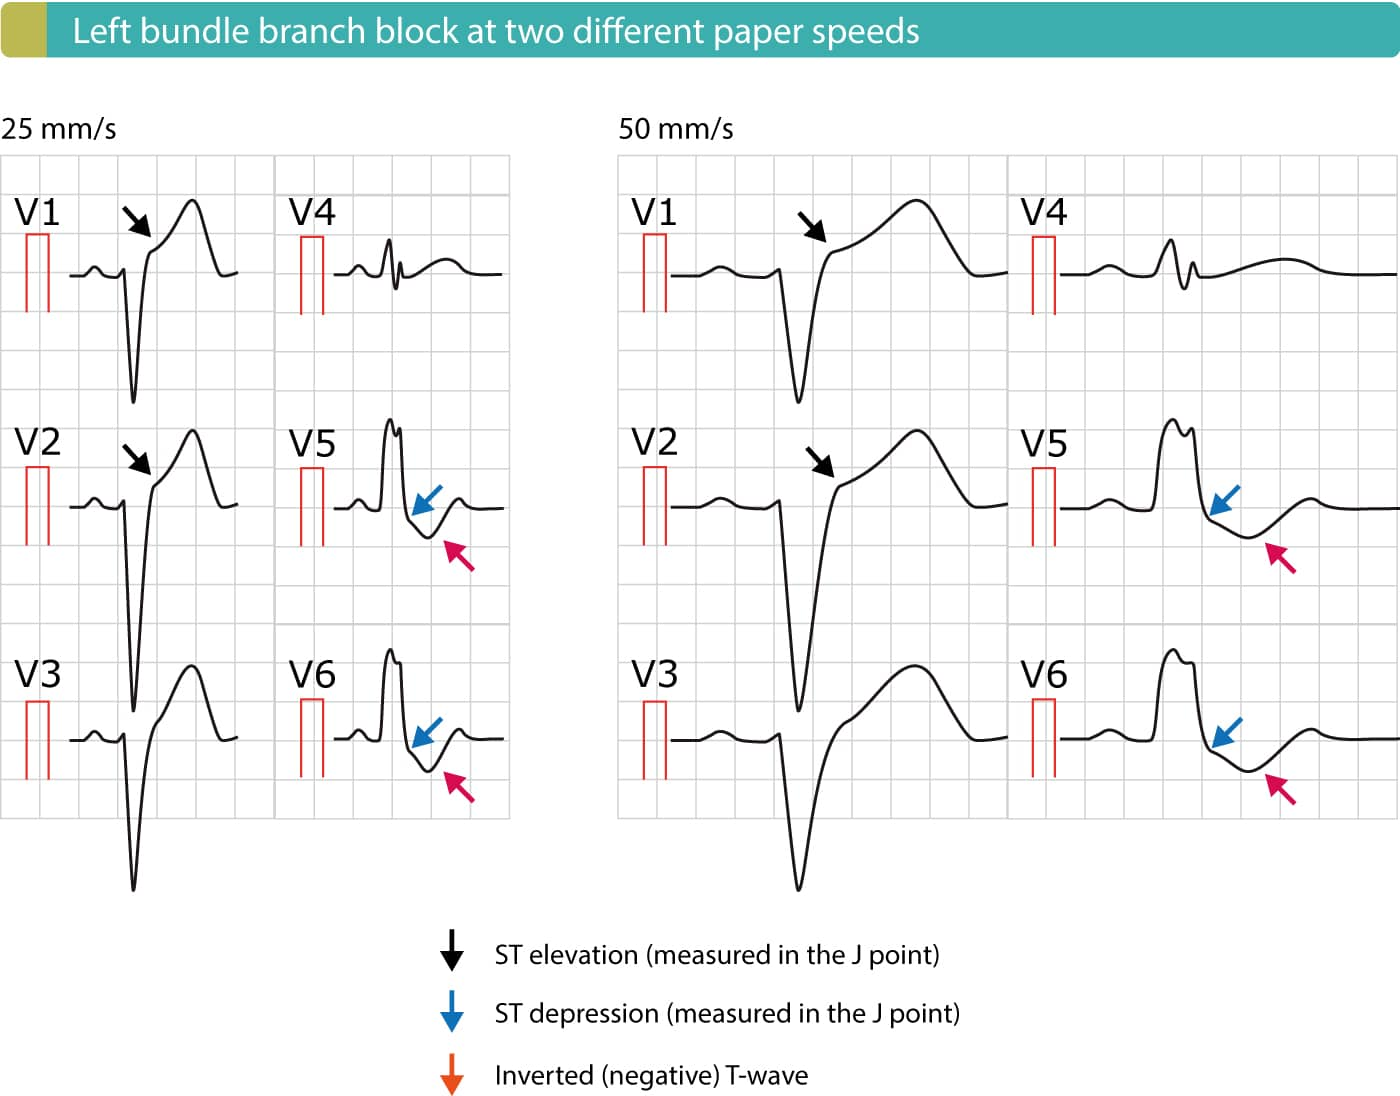 Figure 2. Left bundle branch block (LBBB) at two different paper speeds (25 mm/s and 50 mm/s). Because activation (depolarization) of the left ventricle is abnormal in the presence of LBBB, the recovery (repolarization) will also be abnormal. Abnormal depolarization manifests as an abnormal QRS complex with duration 120 ms or more. Abnormal repolarization manifests with ST-T changes, including ST elevations, ST depressions and negative T-waves.